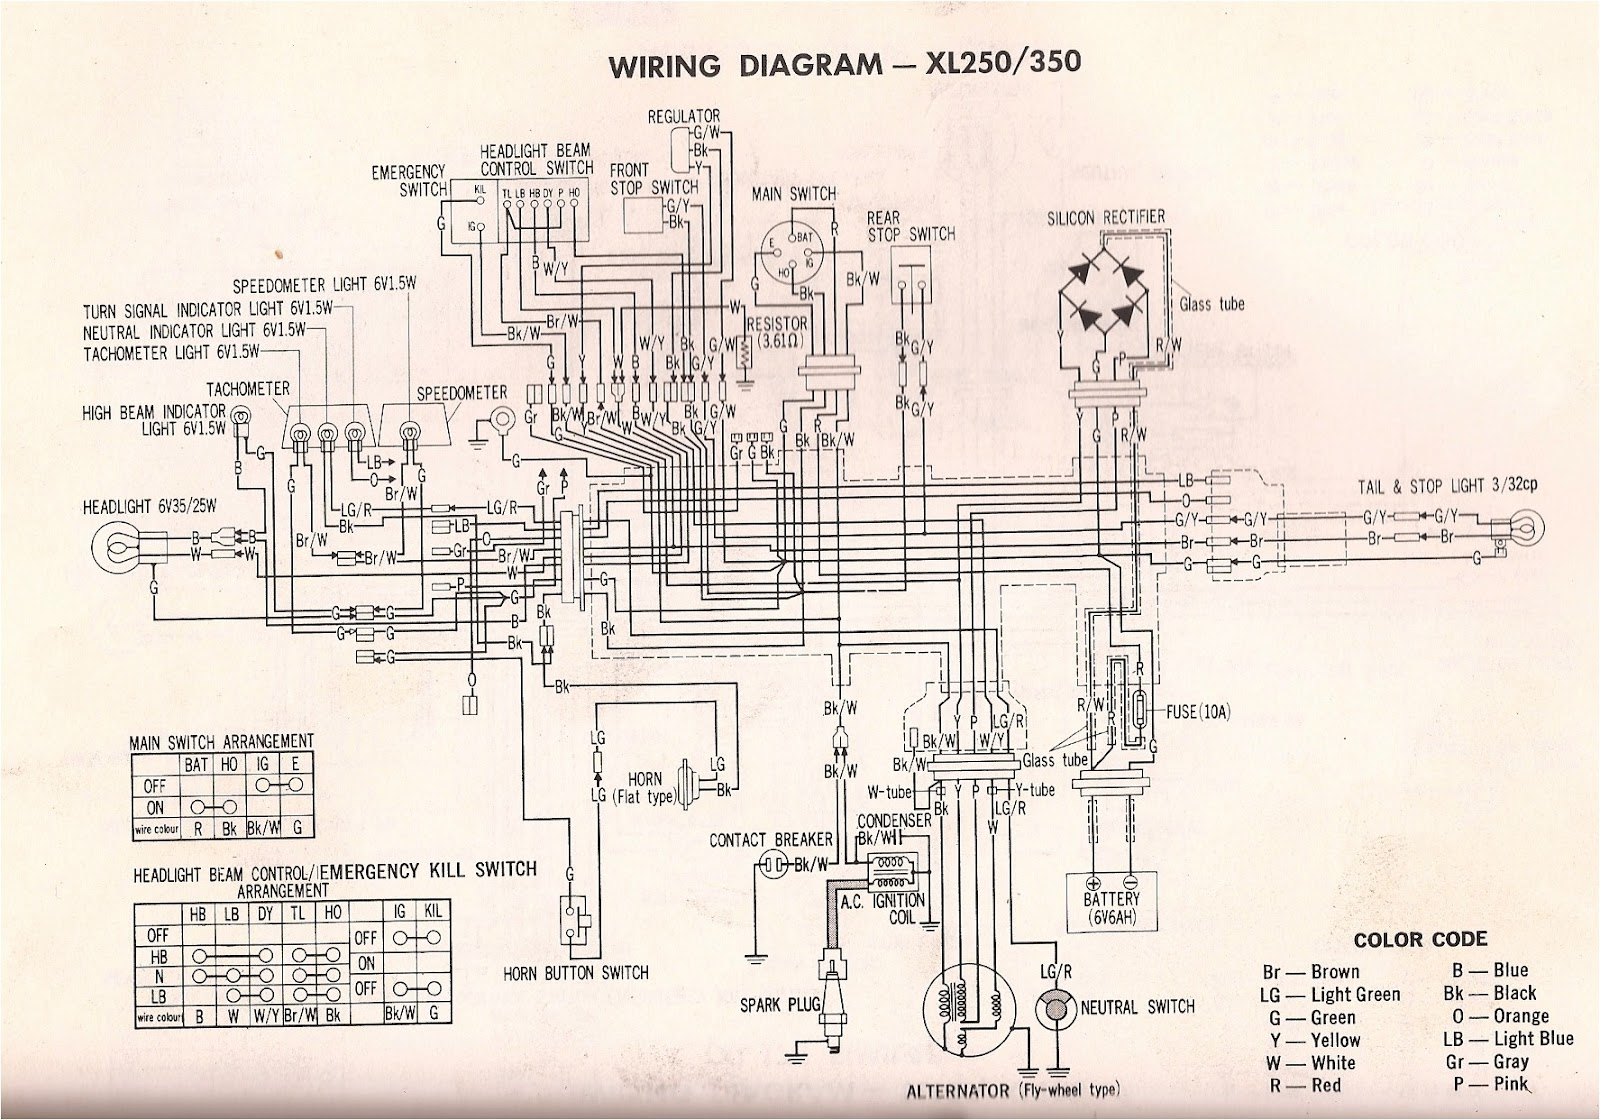 r4l xl350 wiring diagram and xl250 rh ramen4life blogspot com xl350 wiring diagram 1976 xl350 wiring diagram